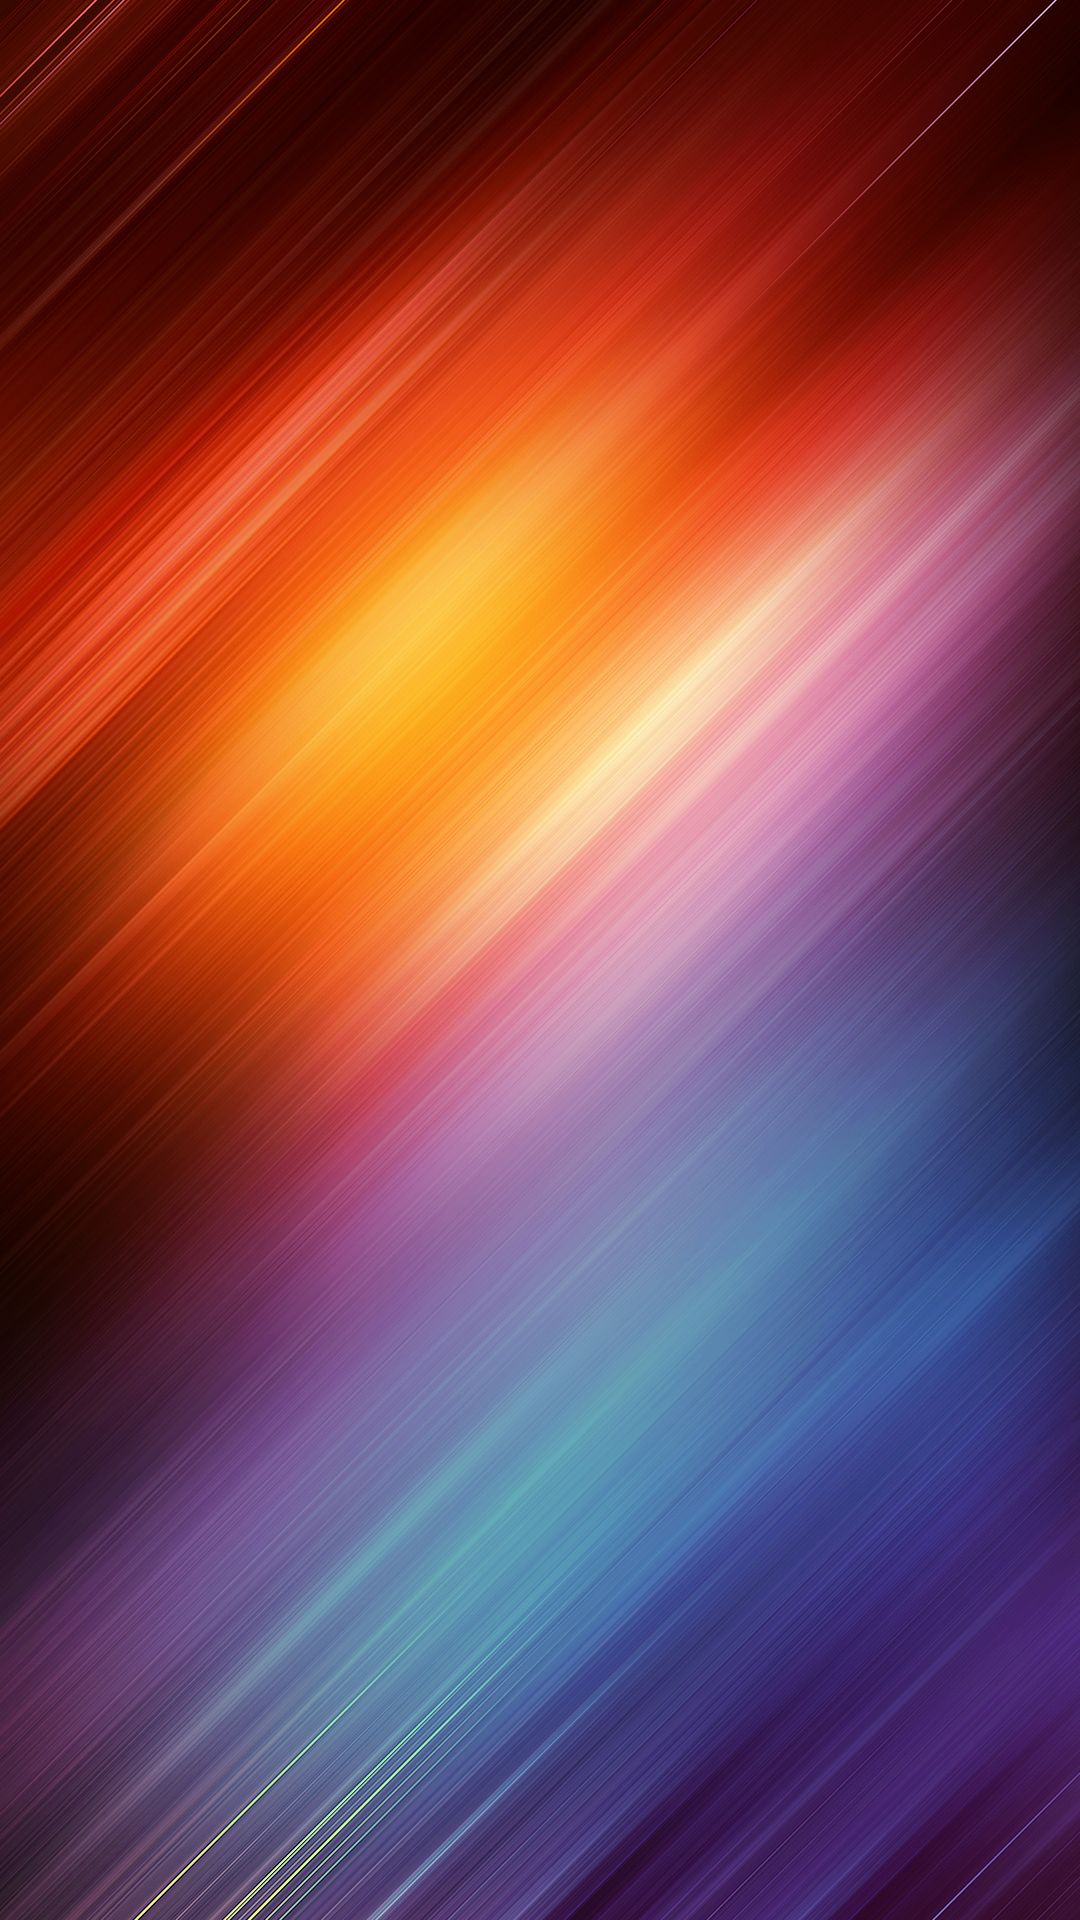 1080x1920 Portrait Wallpaper With Images Rainbow Photo